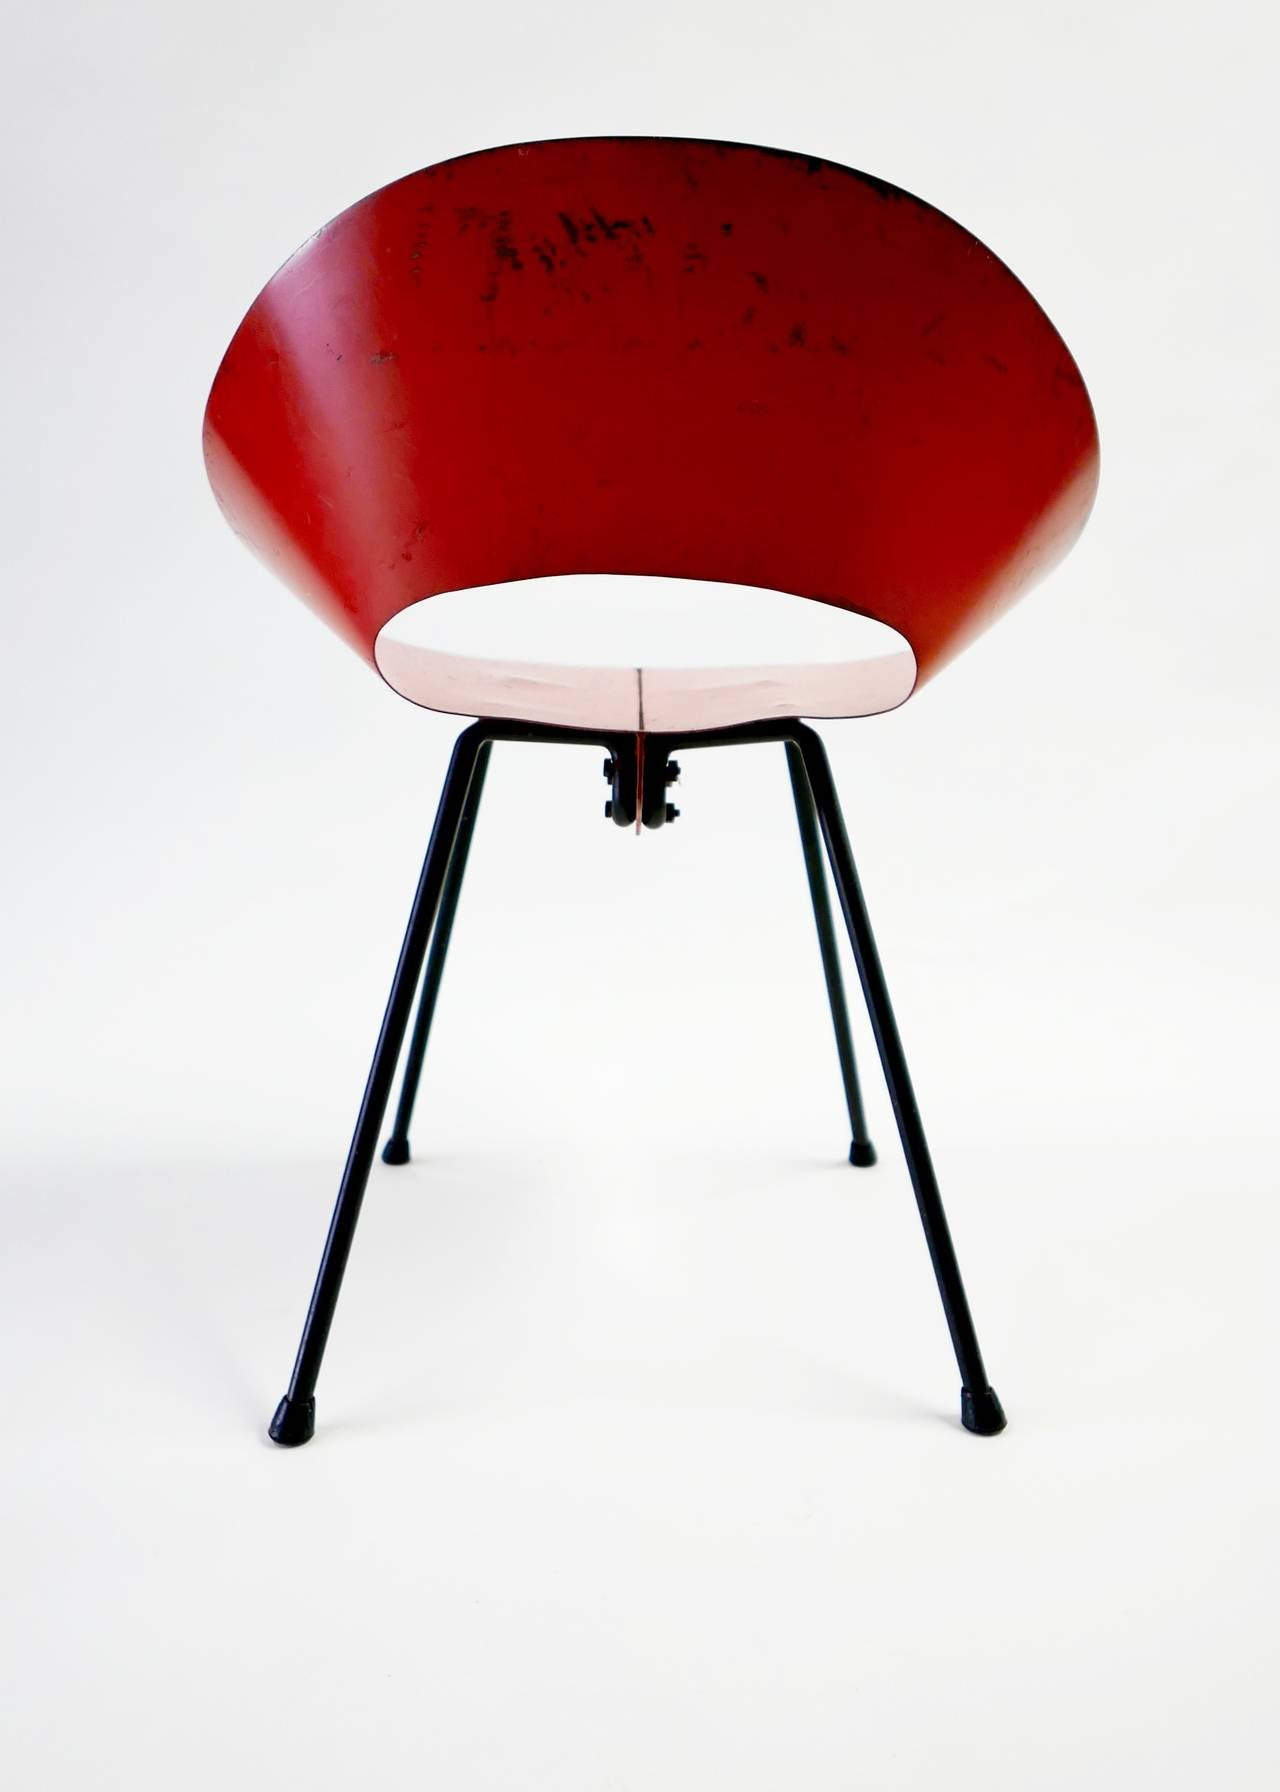 Donald knorr chair knoll associates 1948 for sale at 1stdibs for Knoll associates